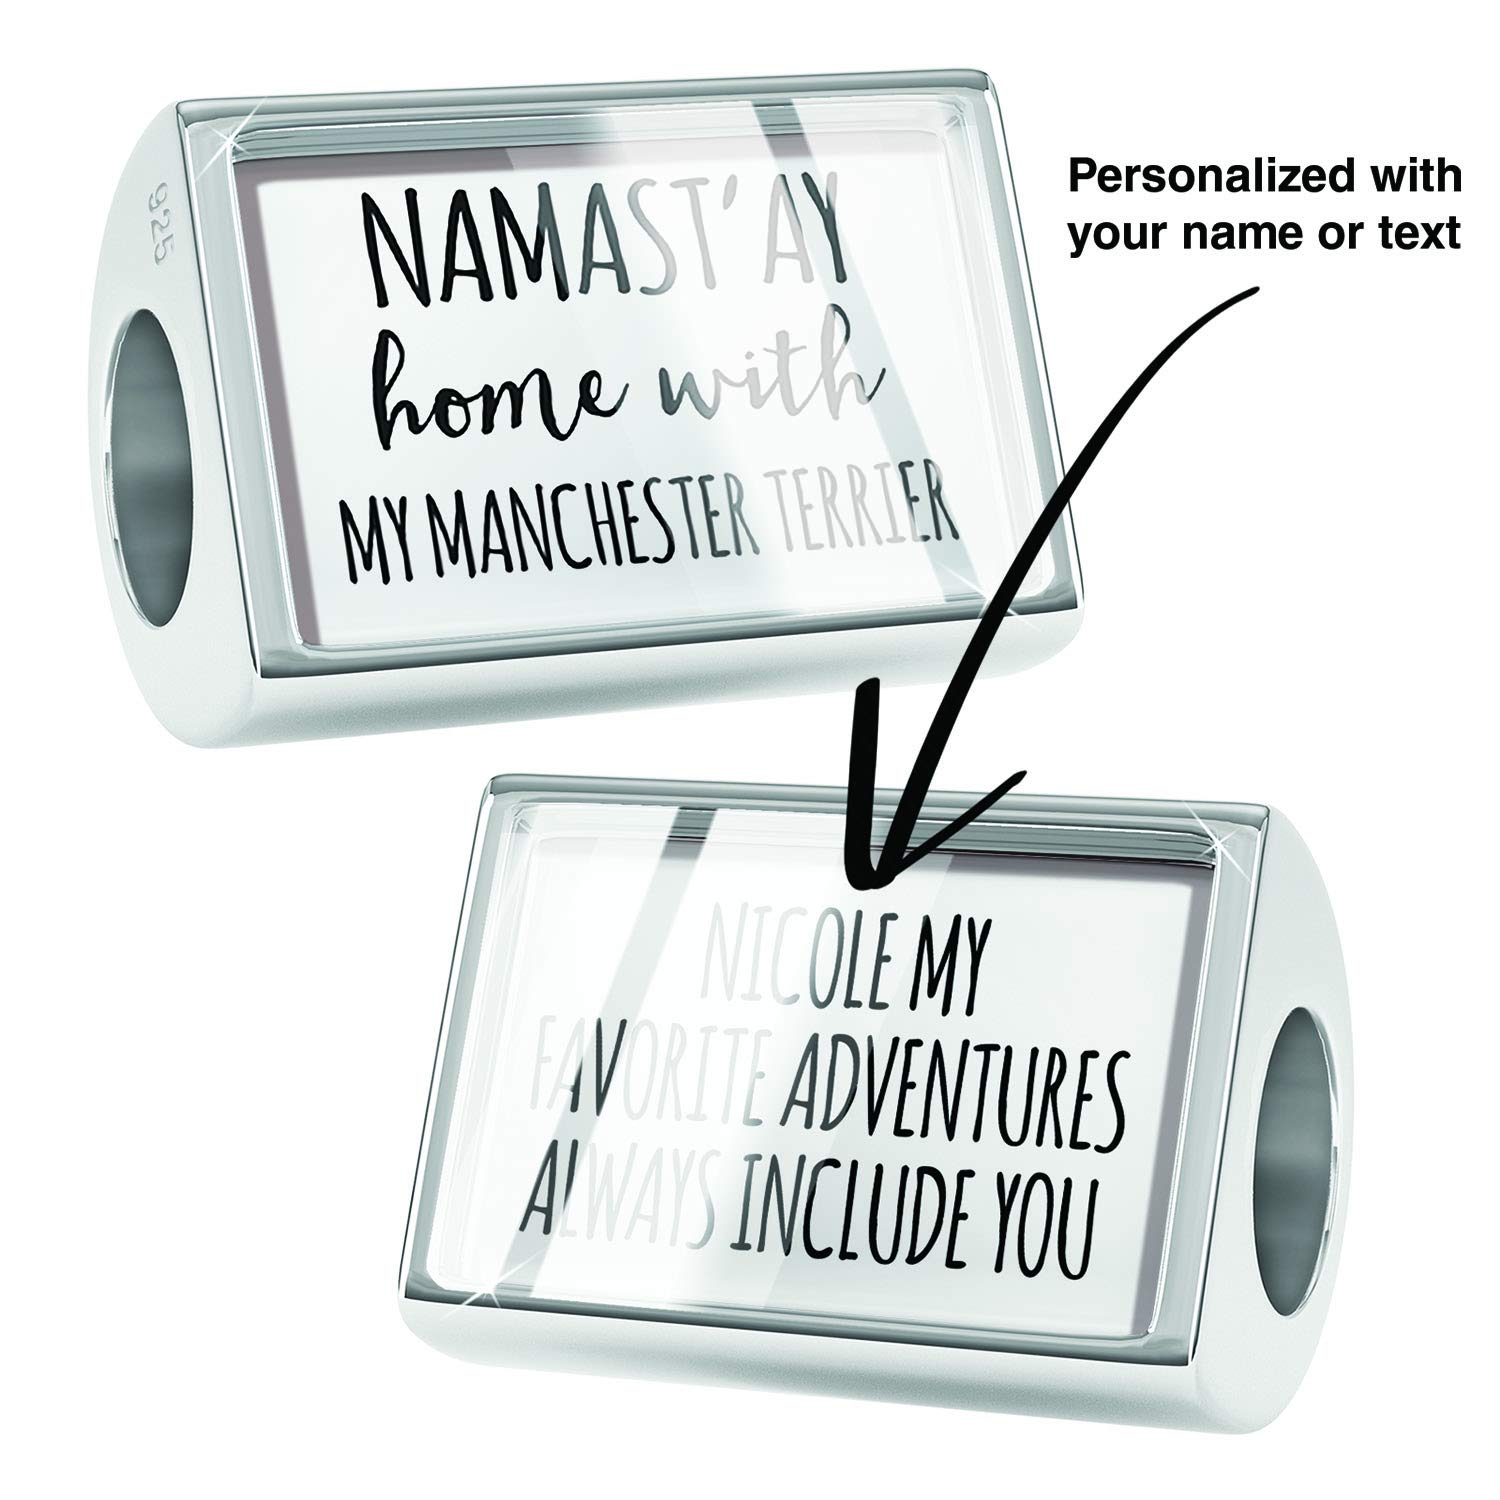 NEONBLOND Custom Charm Namastay Home with My Manchester Terrier Simple Sayings 925 Sterling Silver Bead